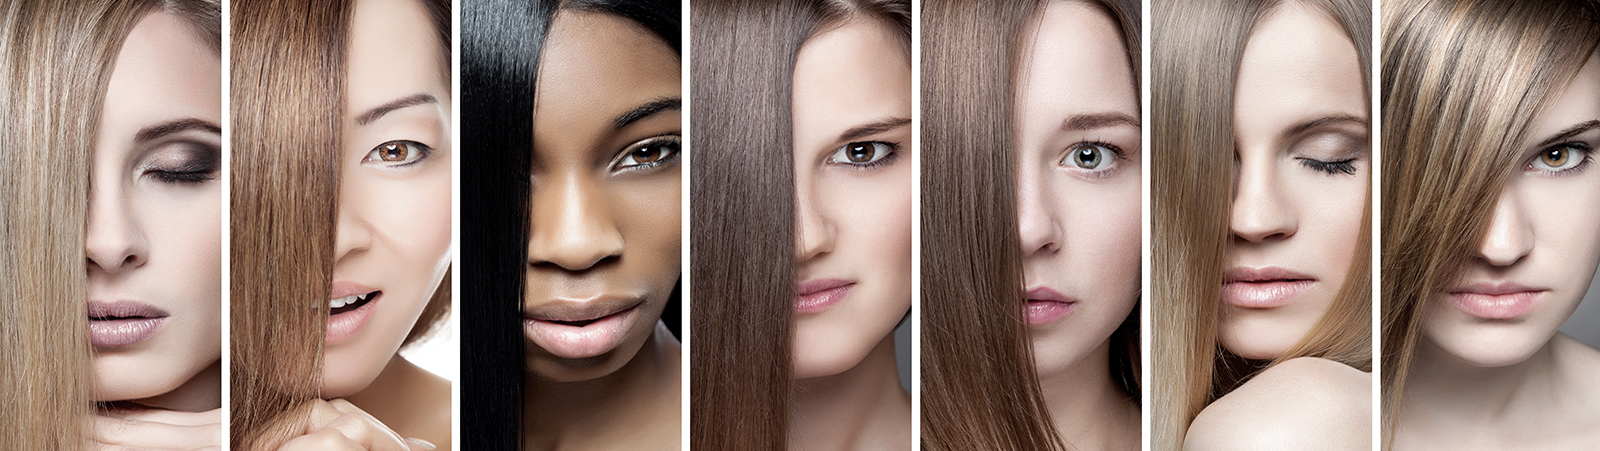 our destin hair salon services for all hair types styles colors and ethnicities